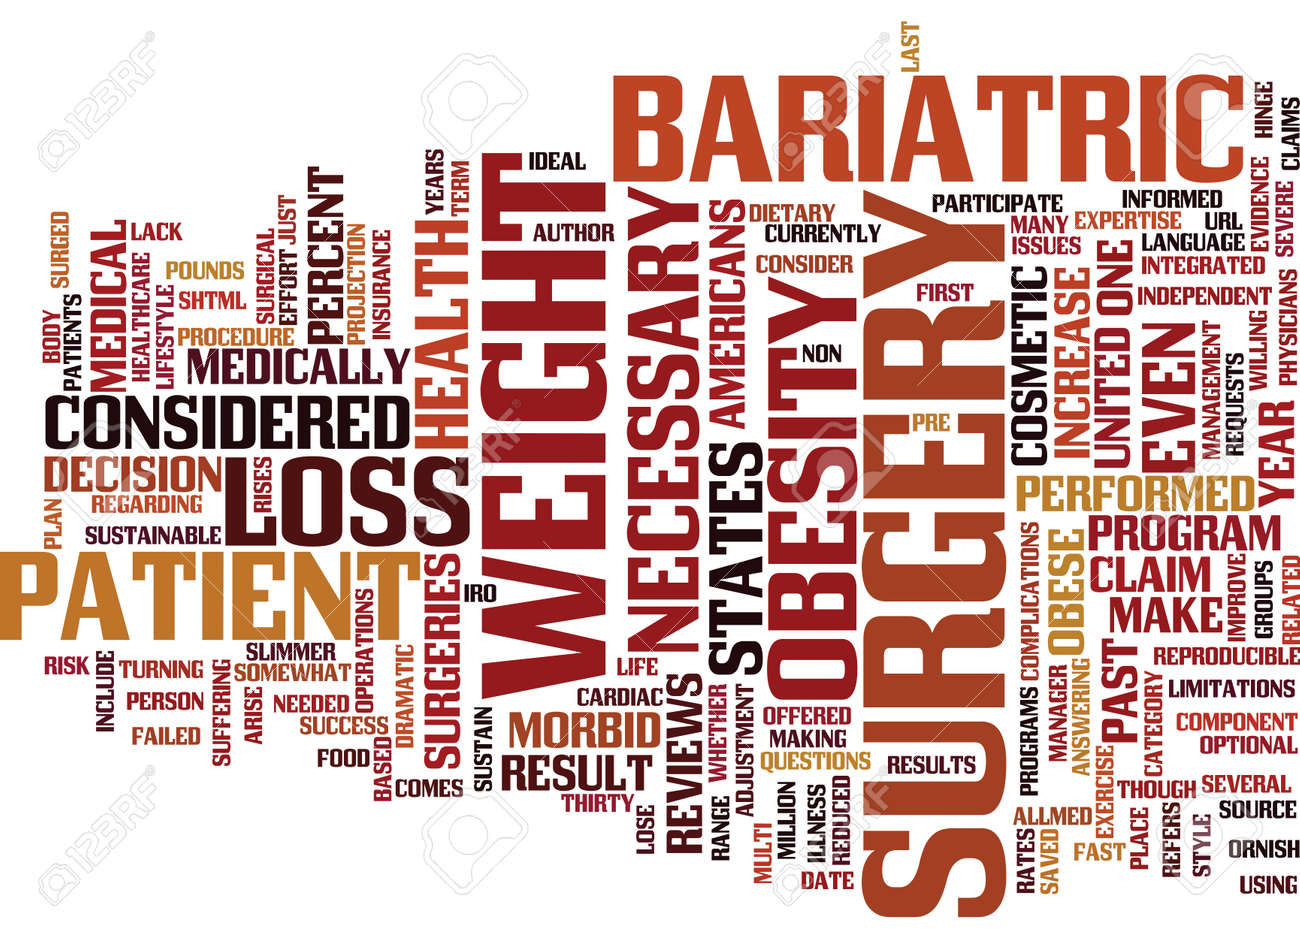 BARIATRIC SURGERY FOR OBESITY Text Background Word Cloud Concept - 82567092